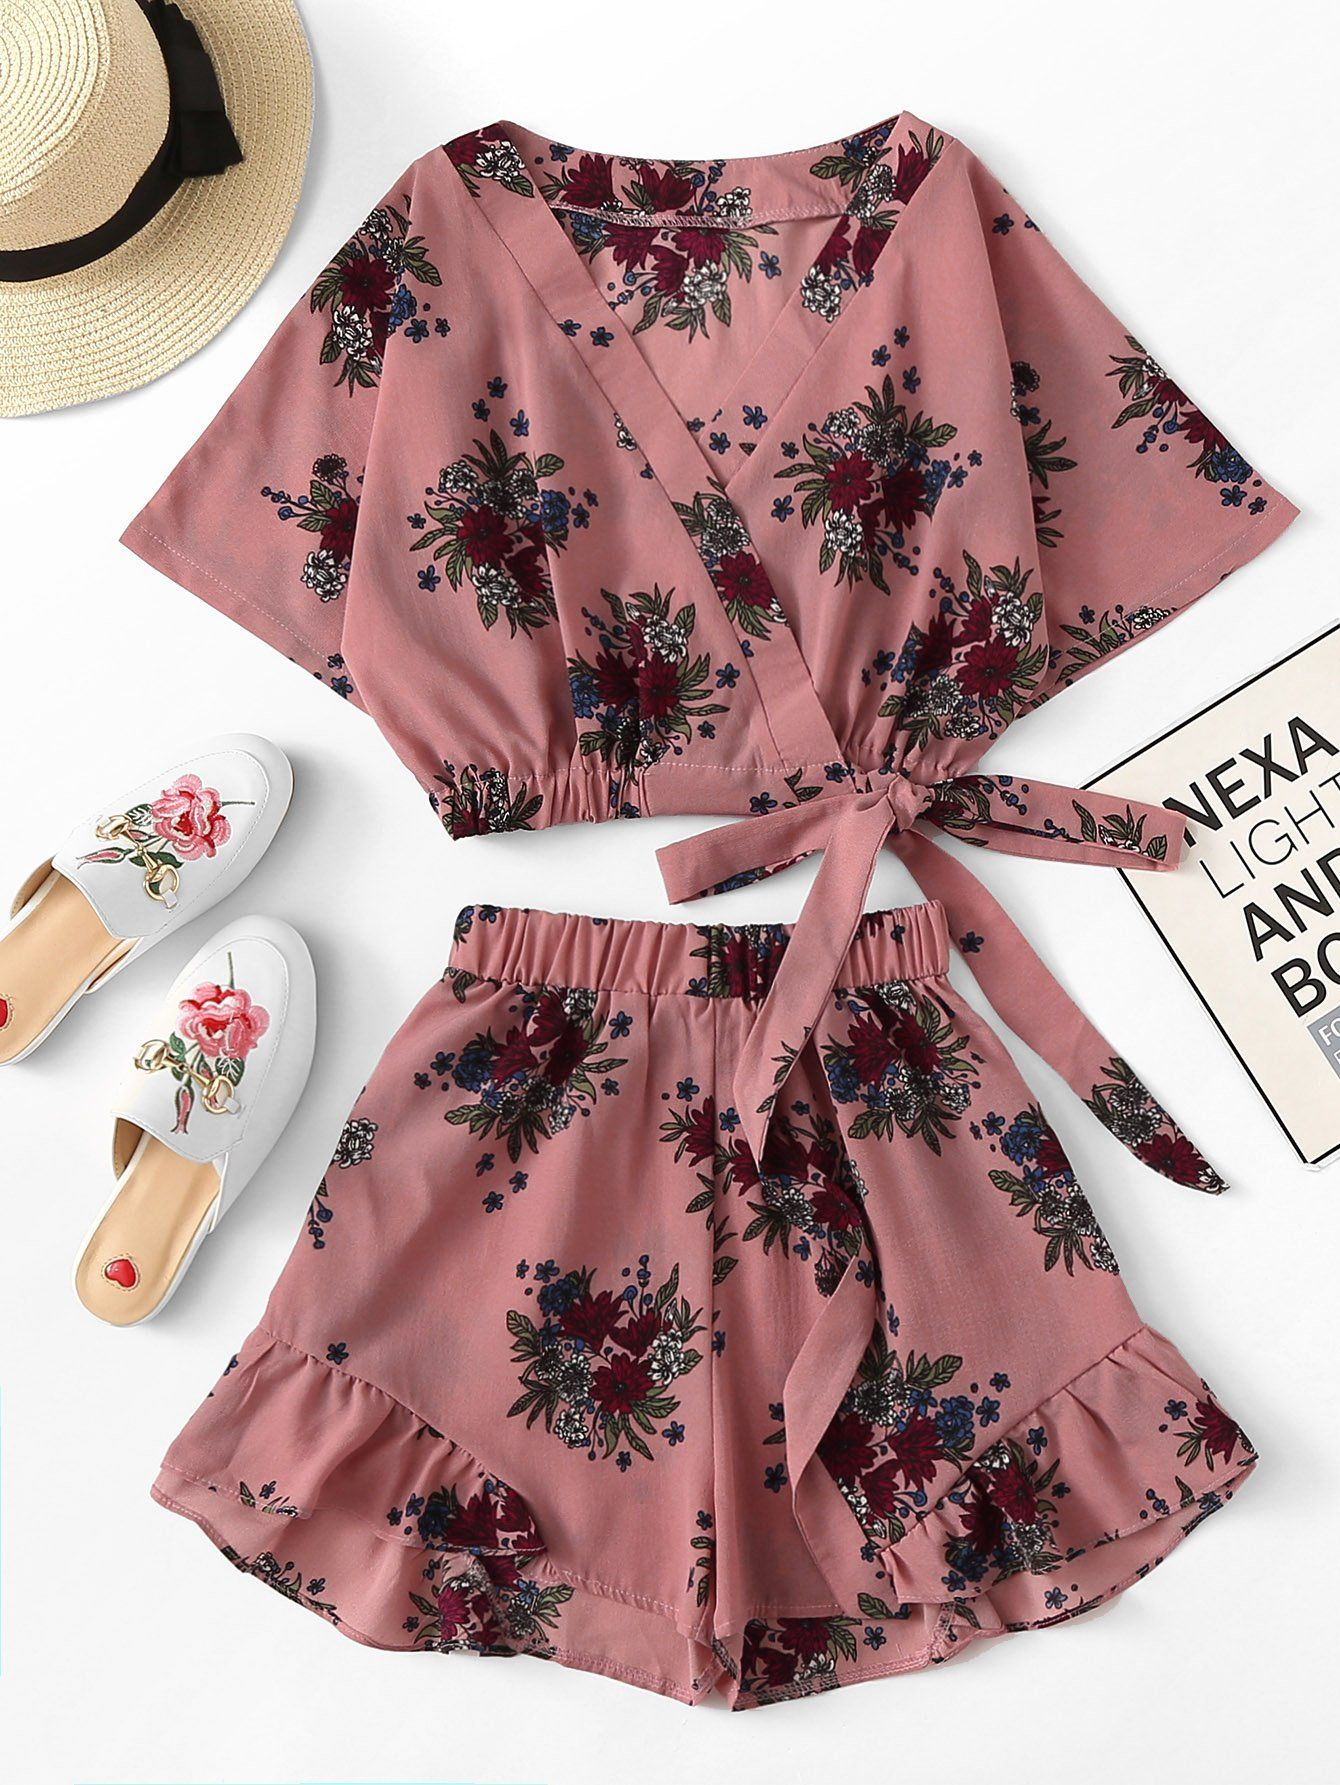 Floral print knot side crop top with shorts in fashion